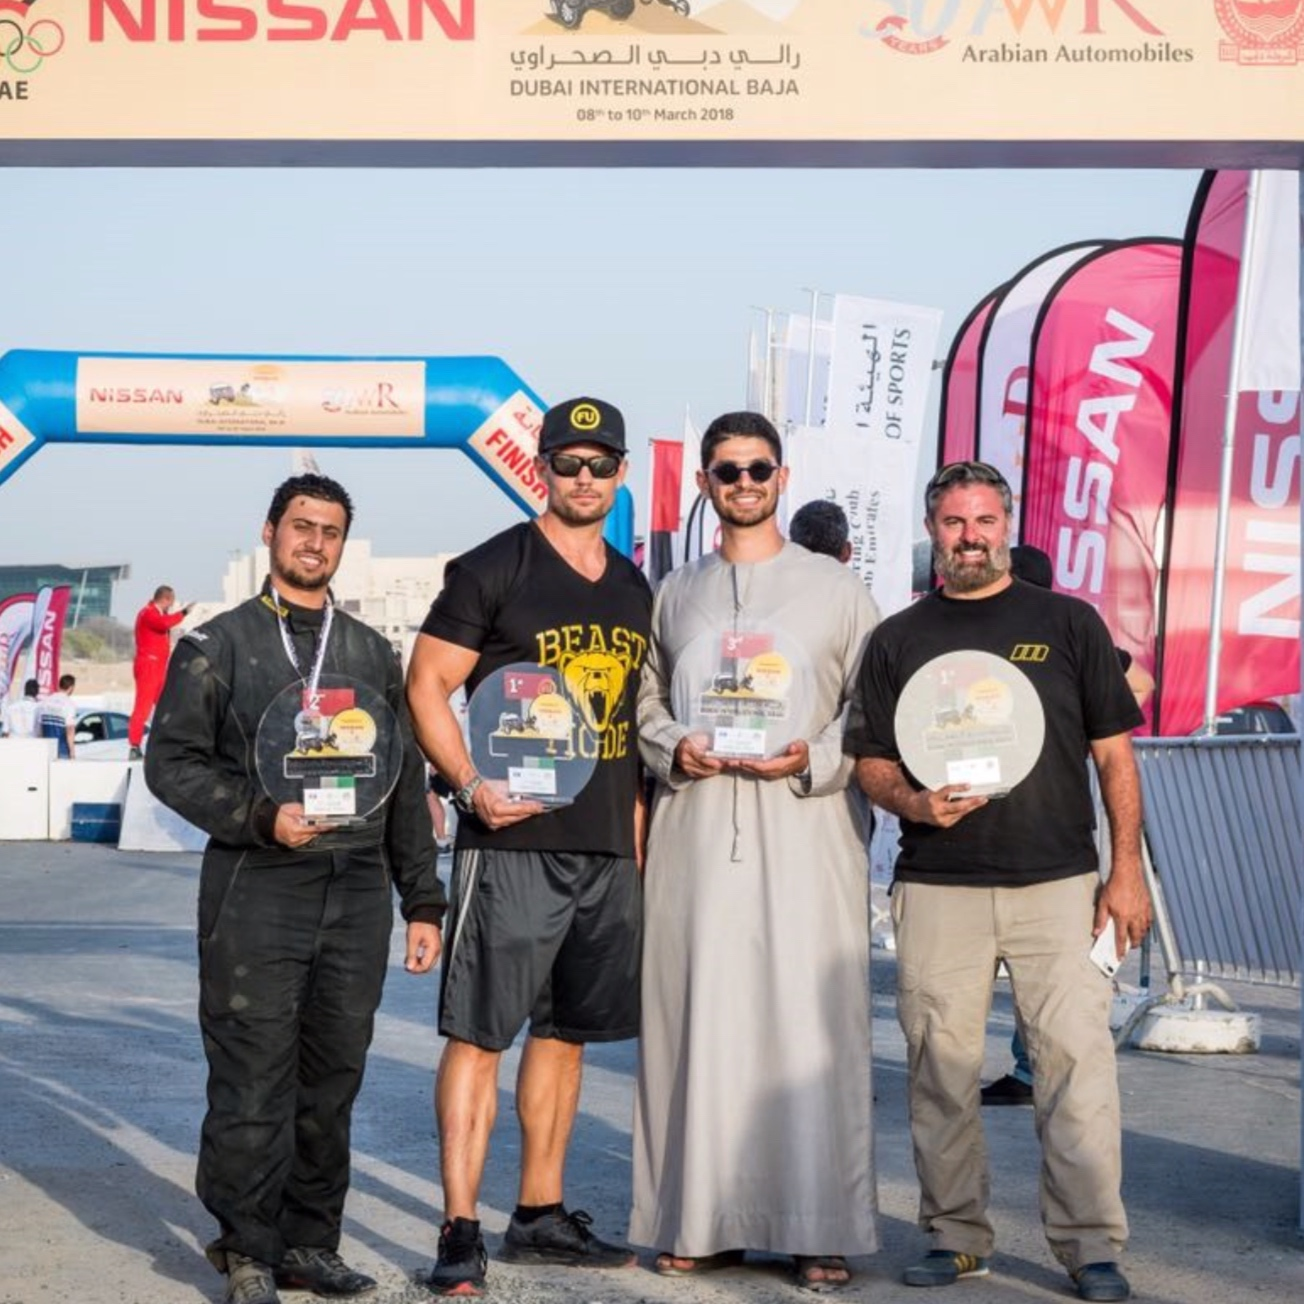 ANDREAS BORGMANN - Dubai Baja, 1st PLace International Class